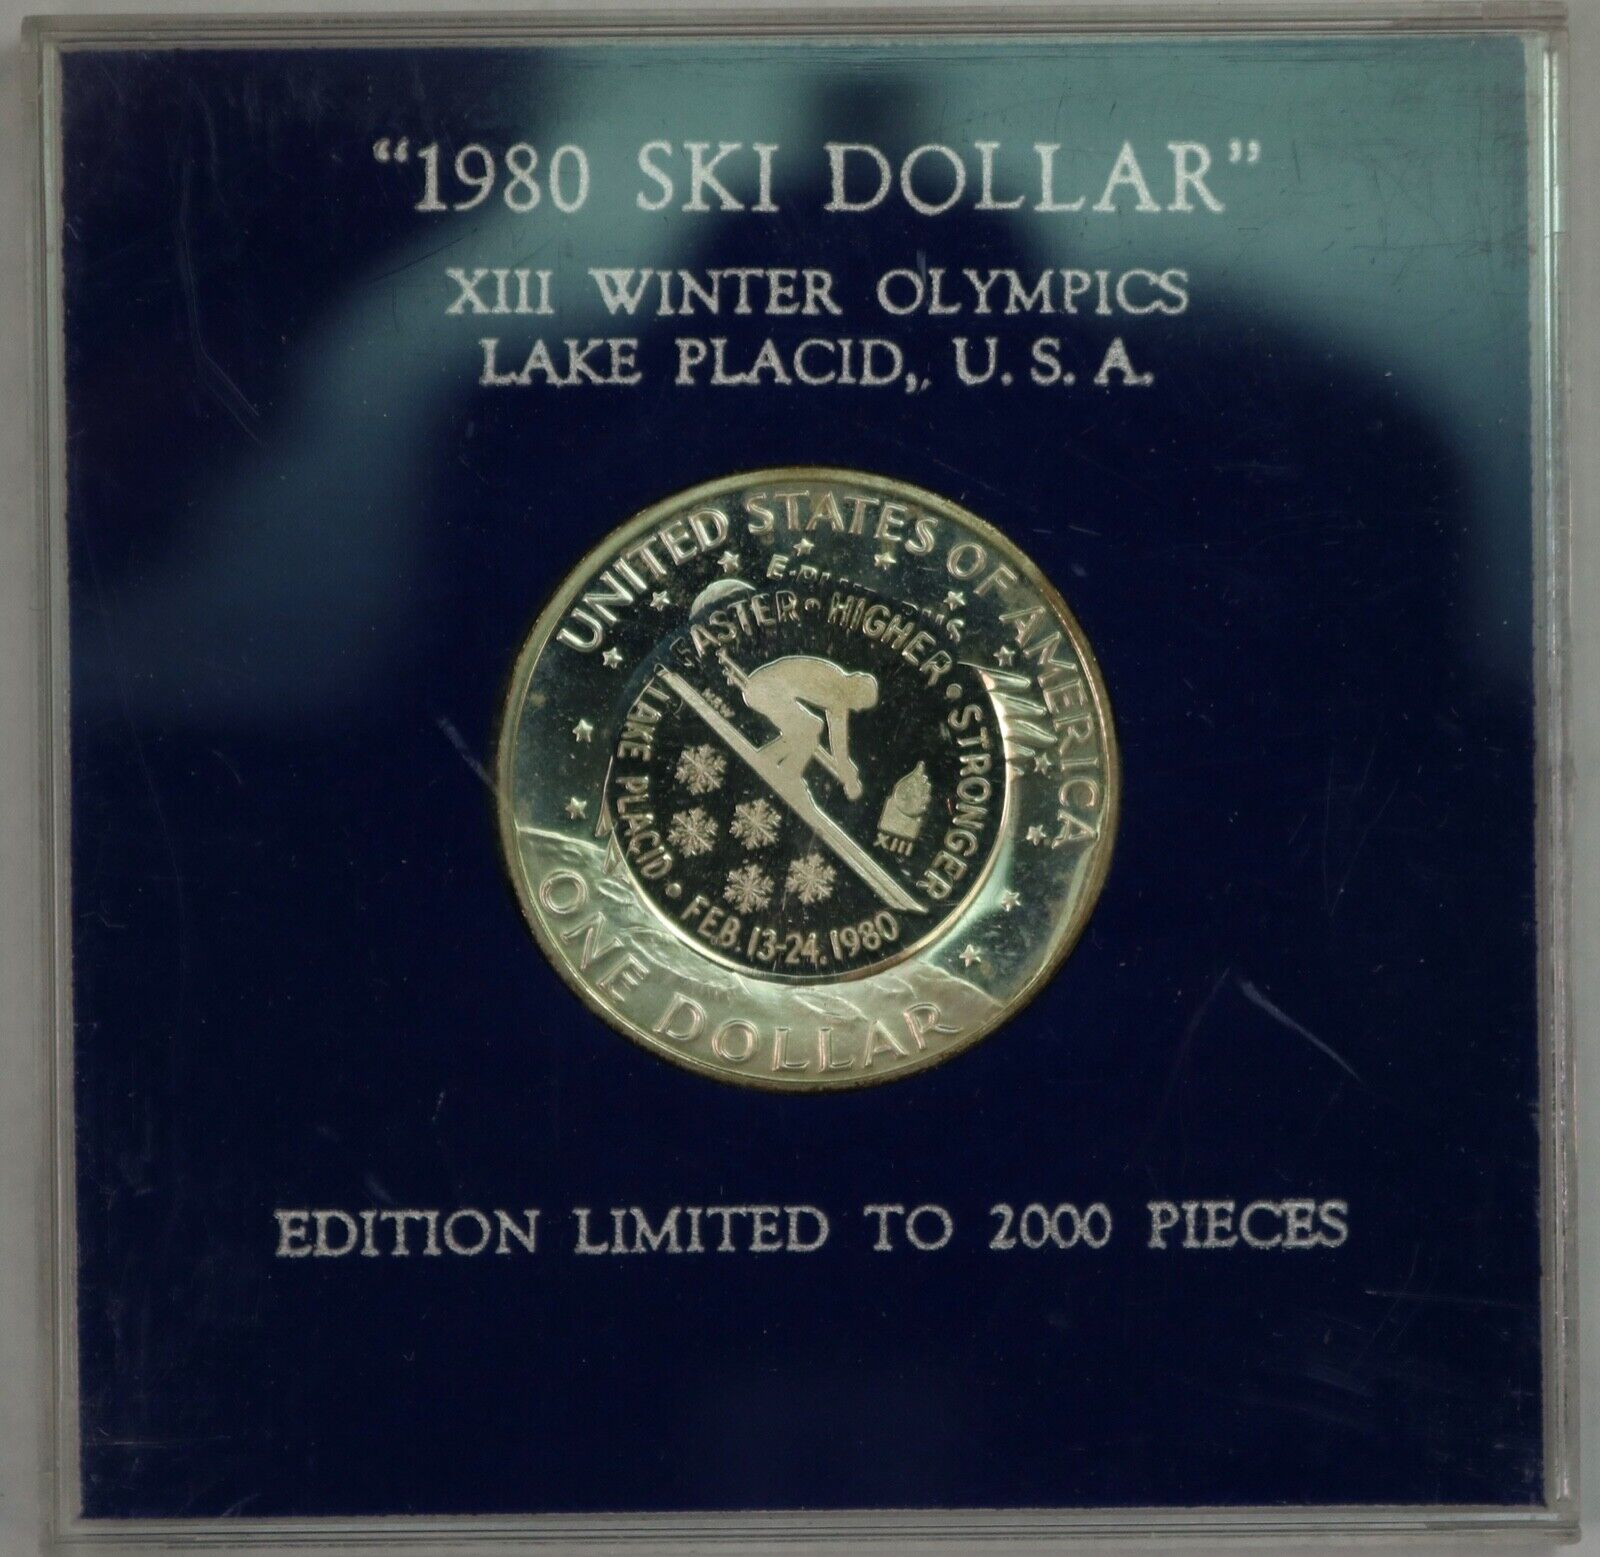 1980 Ski Dollar. Counterstrike By Mel Wacks. RAW560/SH - $89.99